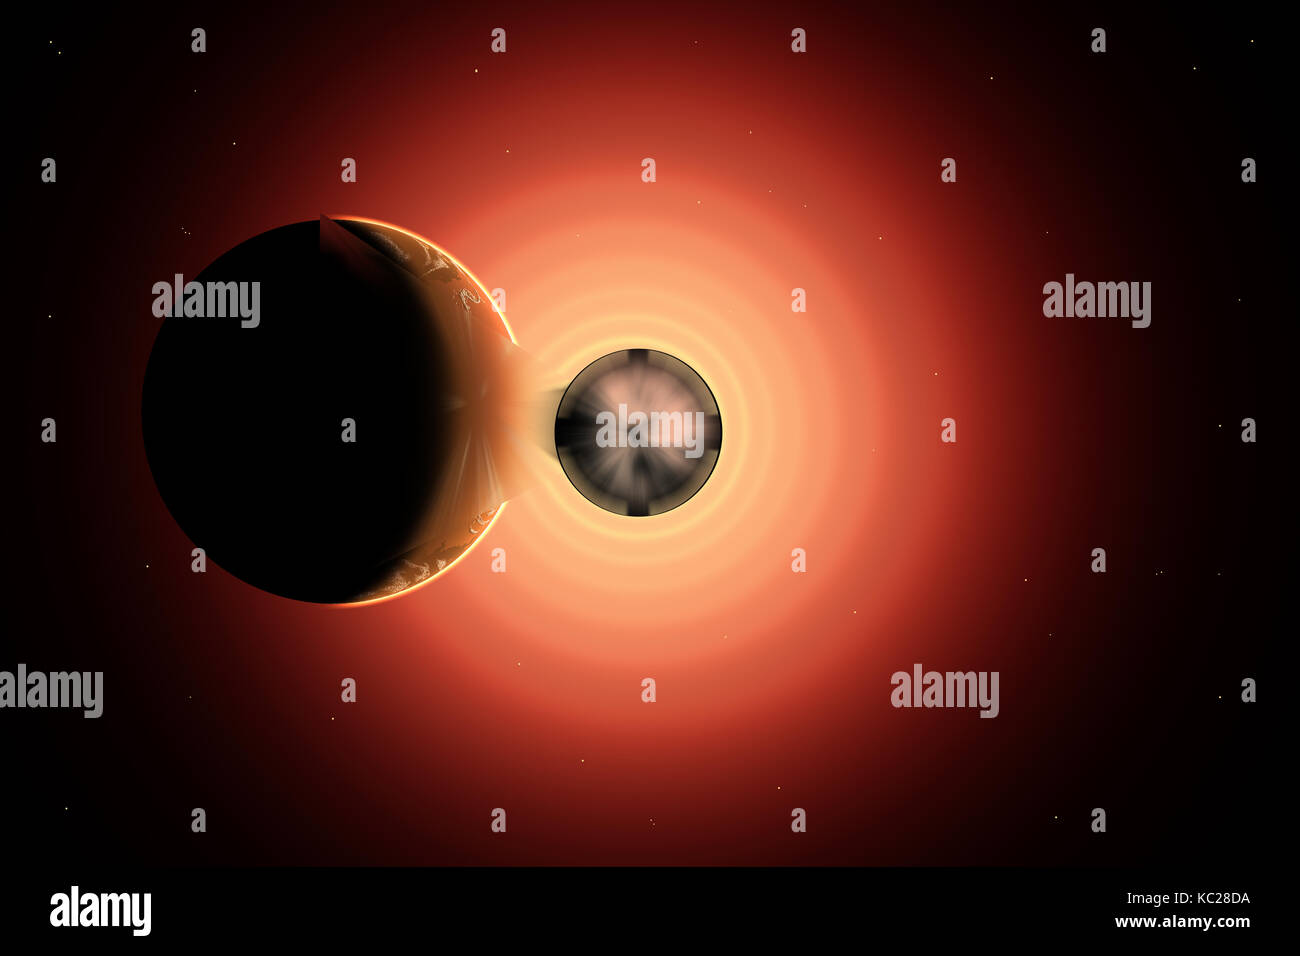 A Rogue Planet Being Pulled Into A Black Hole. - Stock Image